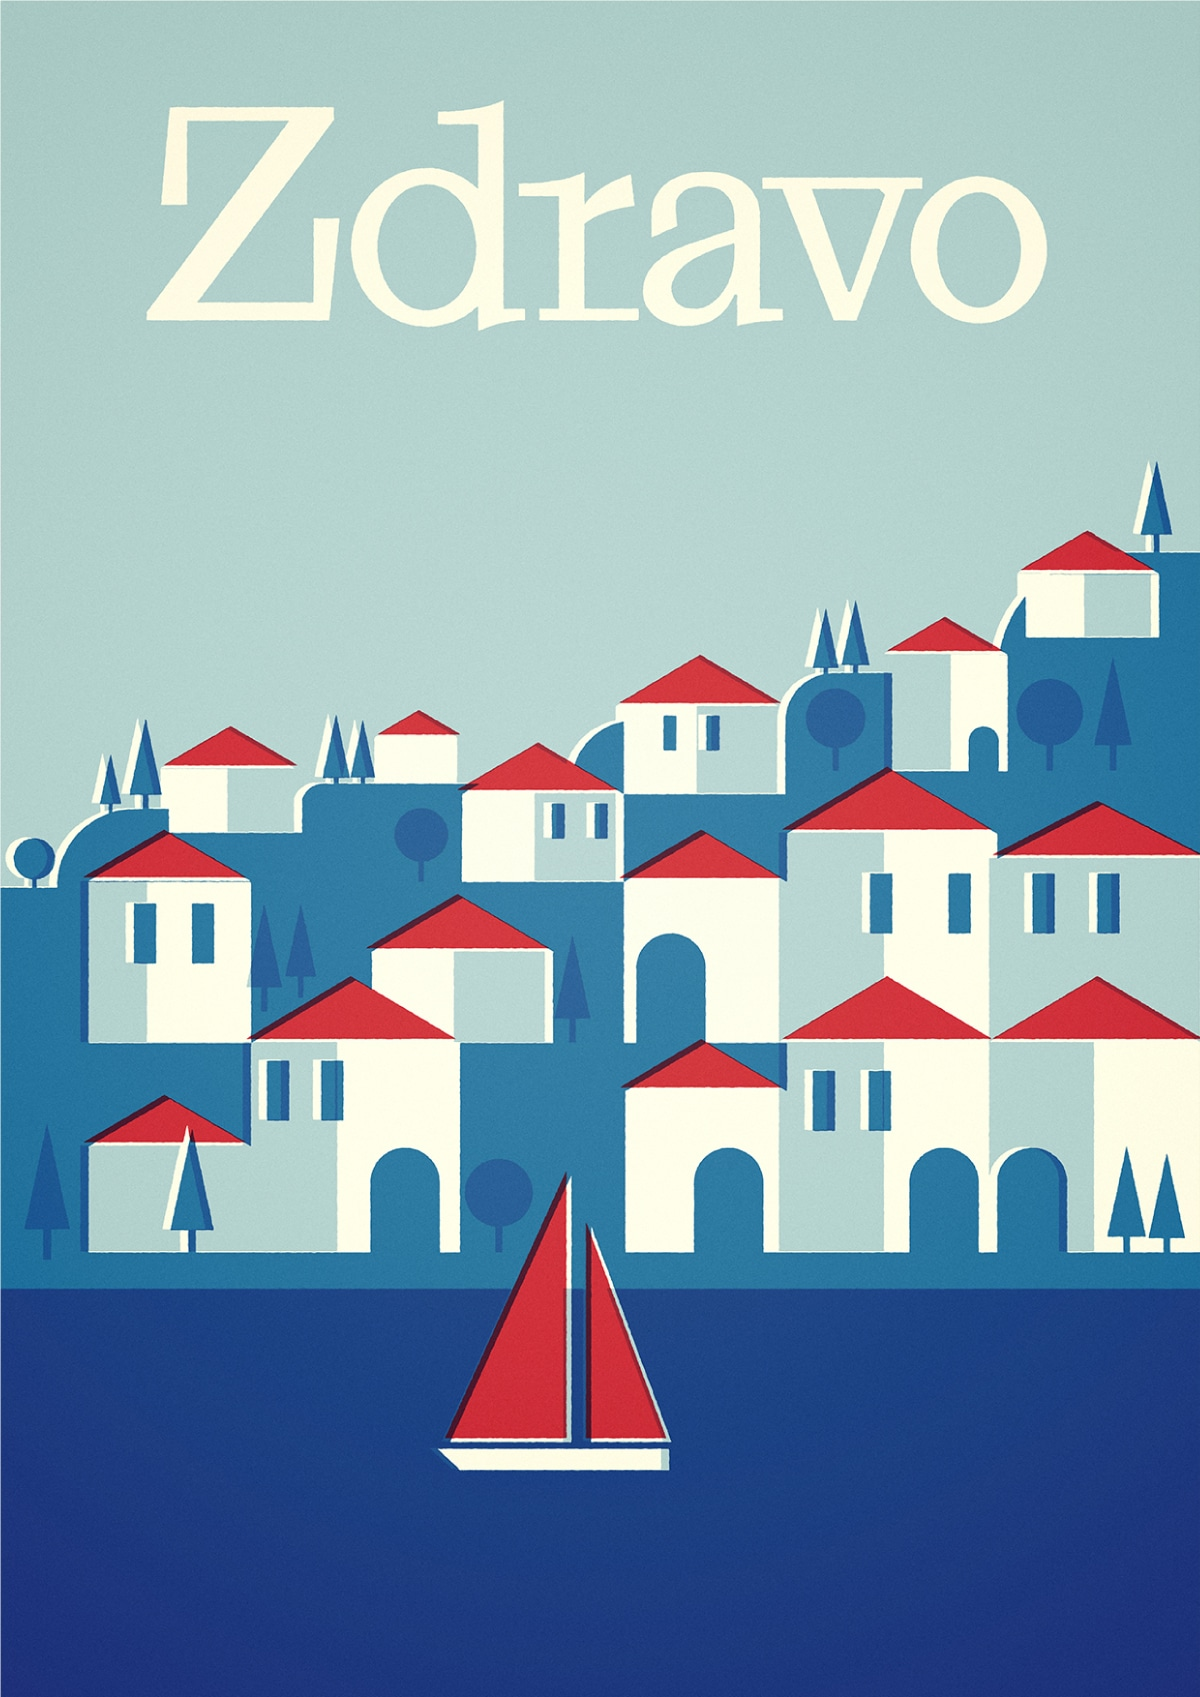 Croatia Poster by Stanley Chow and David Sedgwick